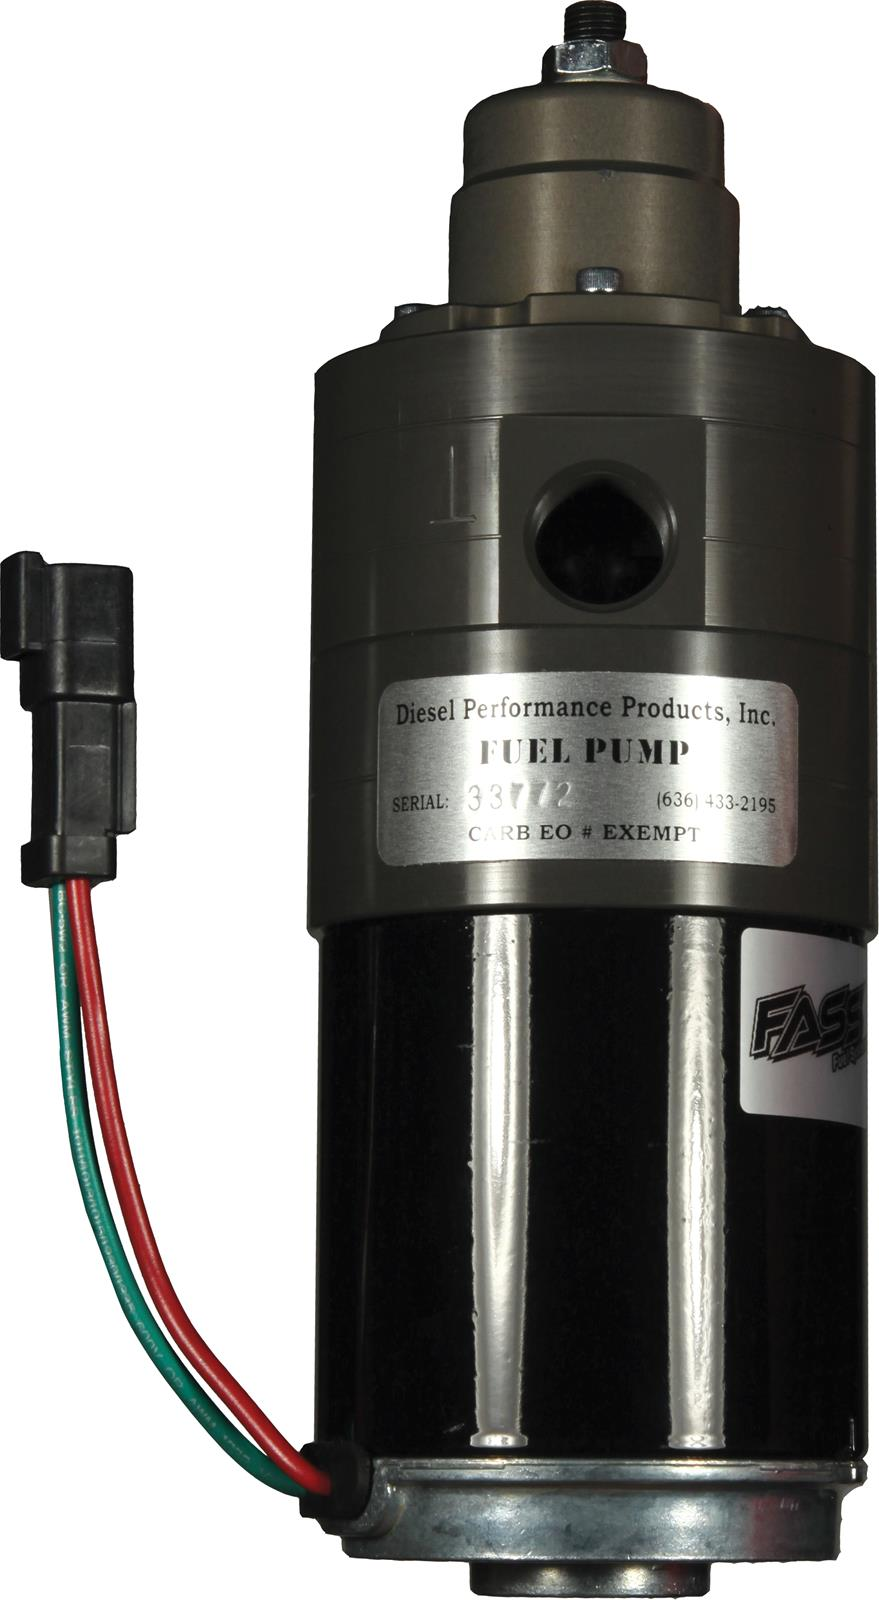 FASS Fuel Systems Adjustable Diesel Fuel Lift Pumps FA C09 260G